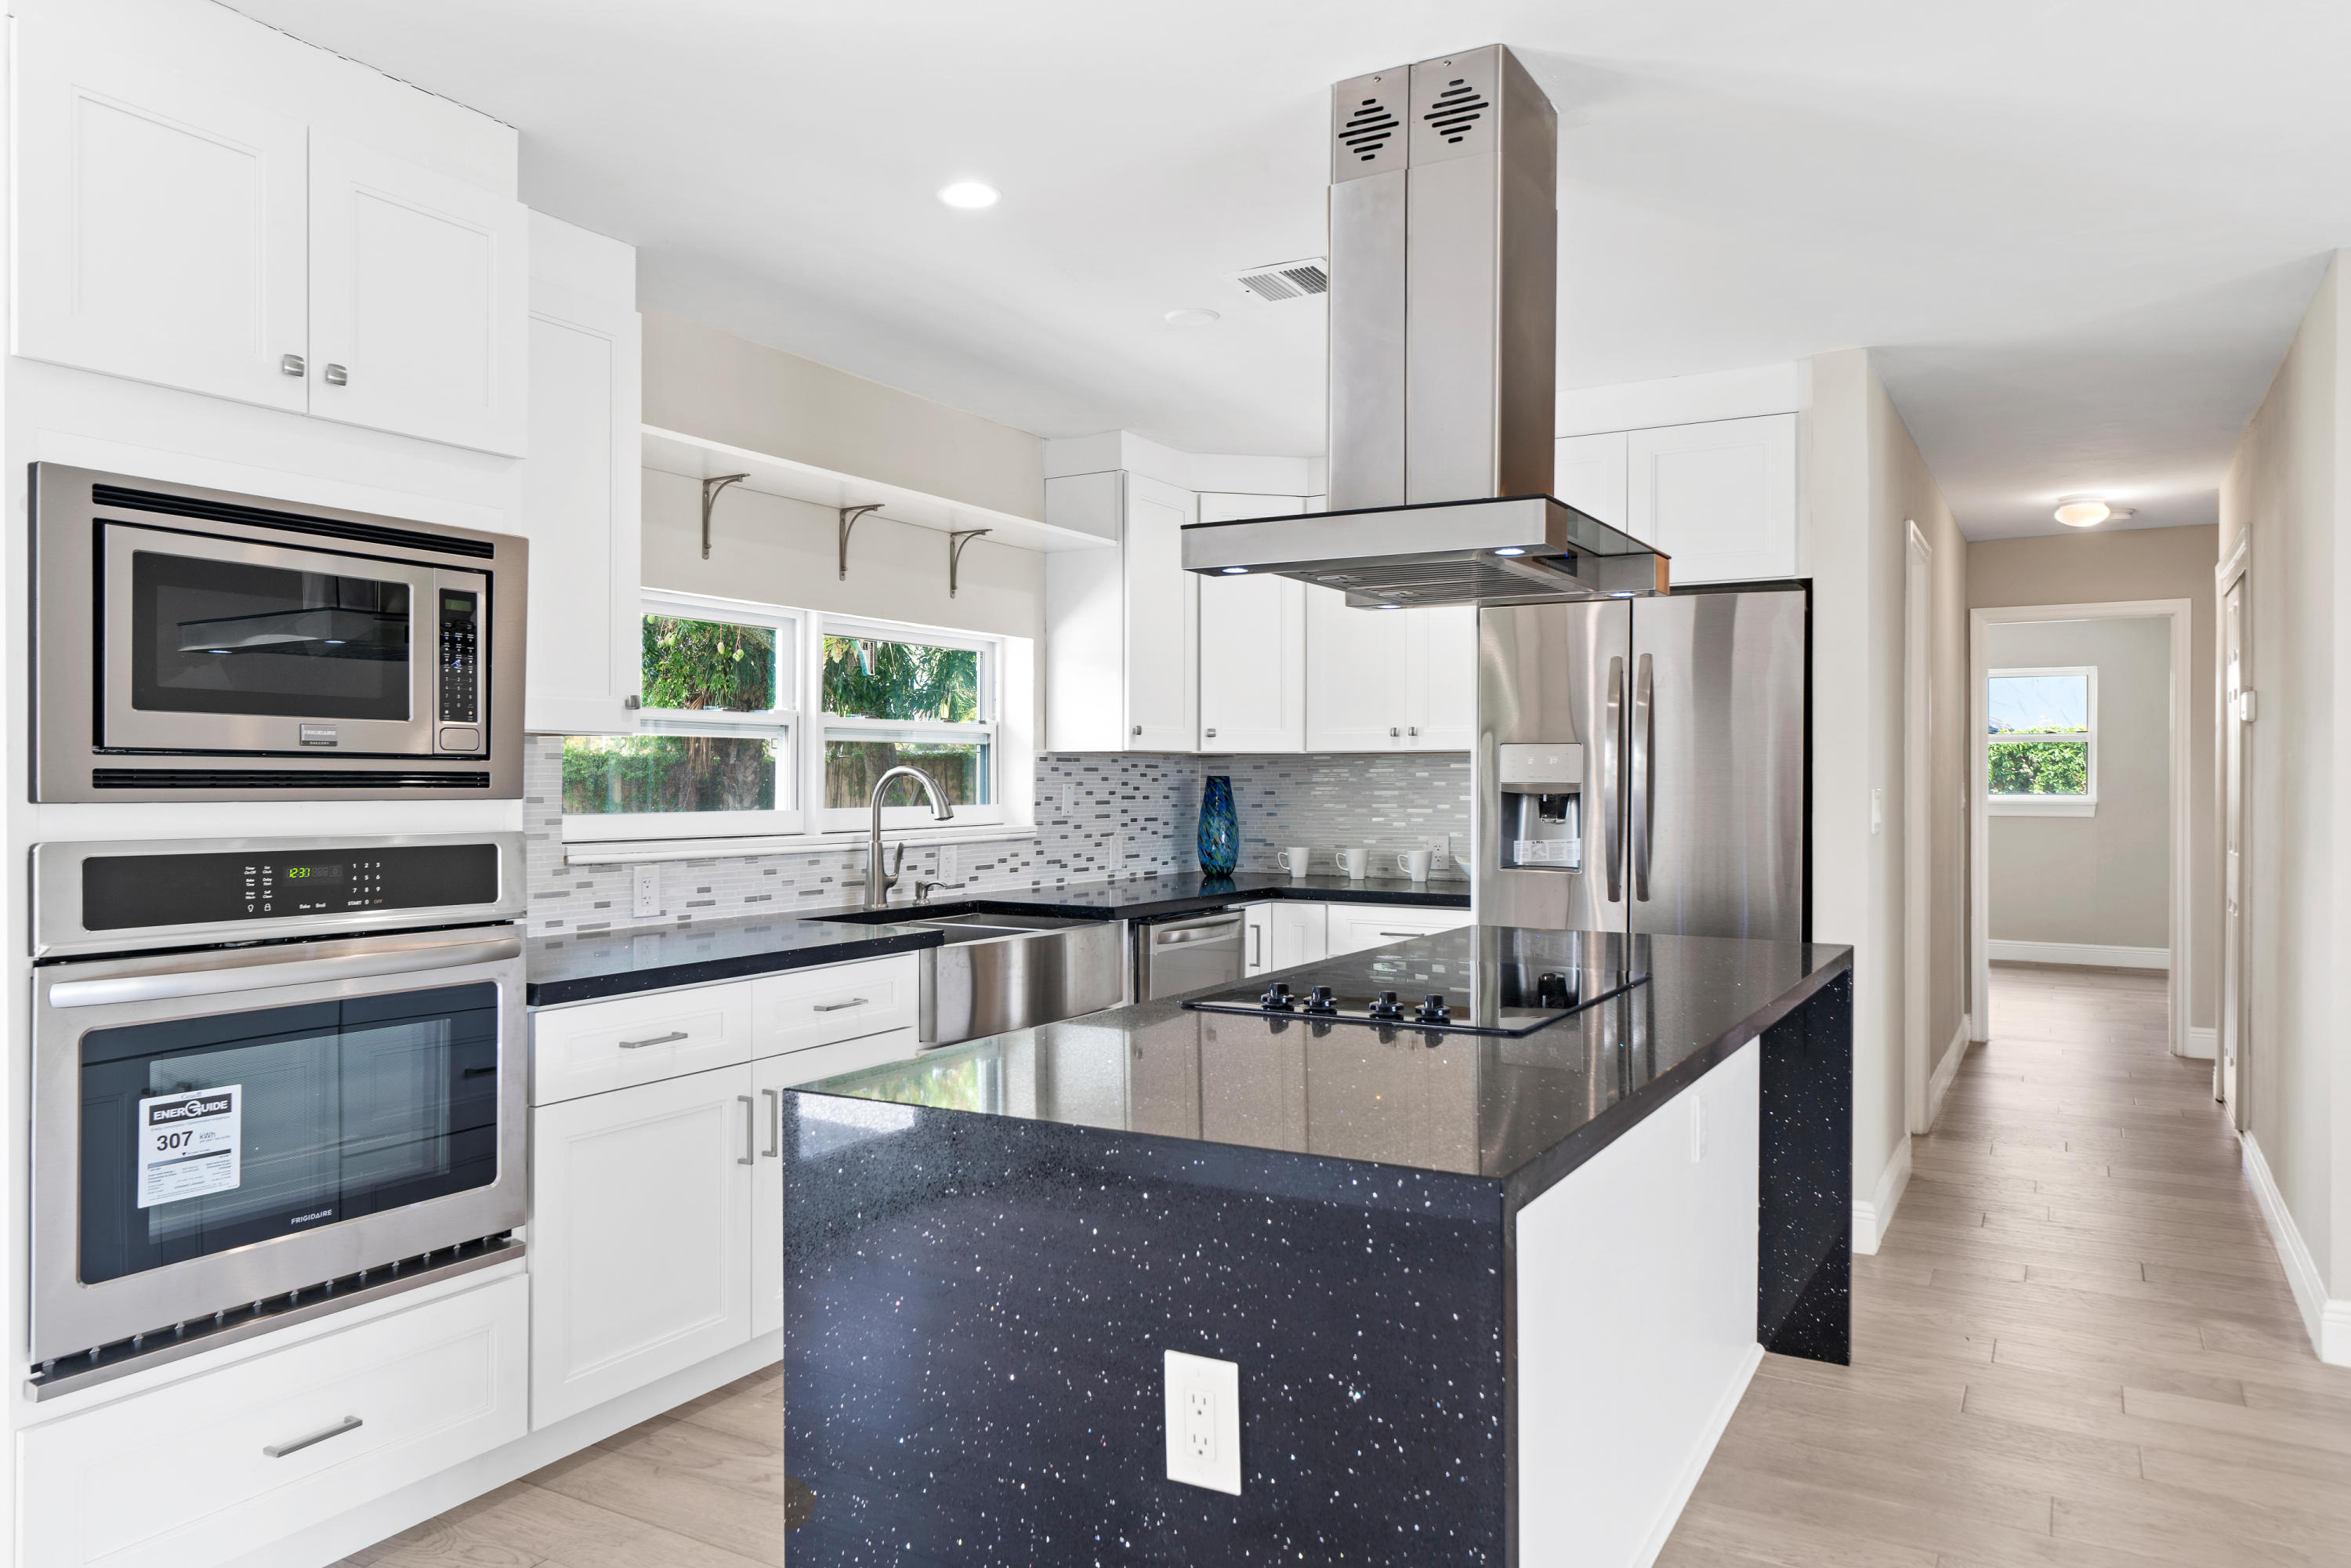 Home for sale in THE COVE Deerfield Beach Florida